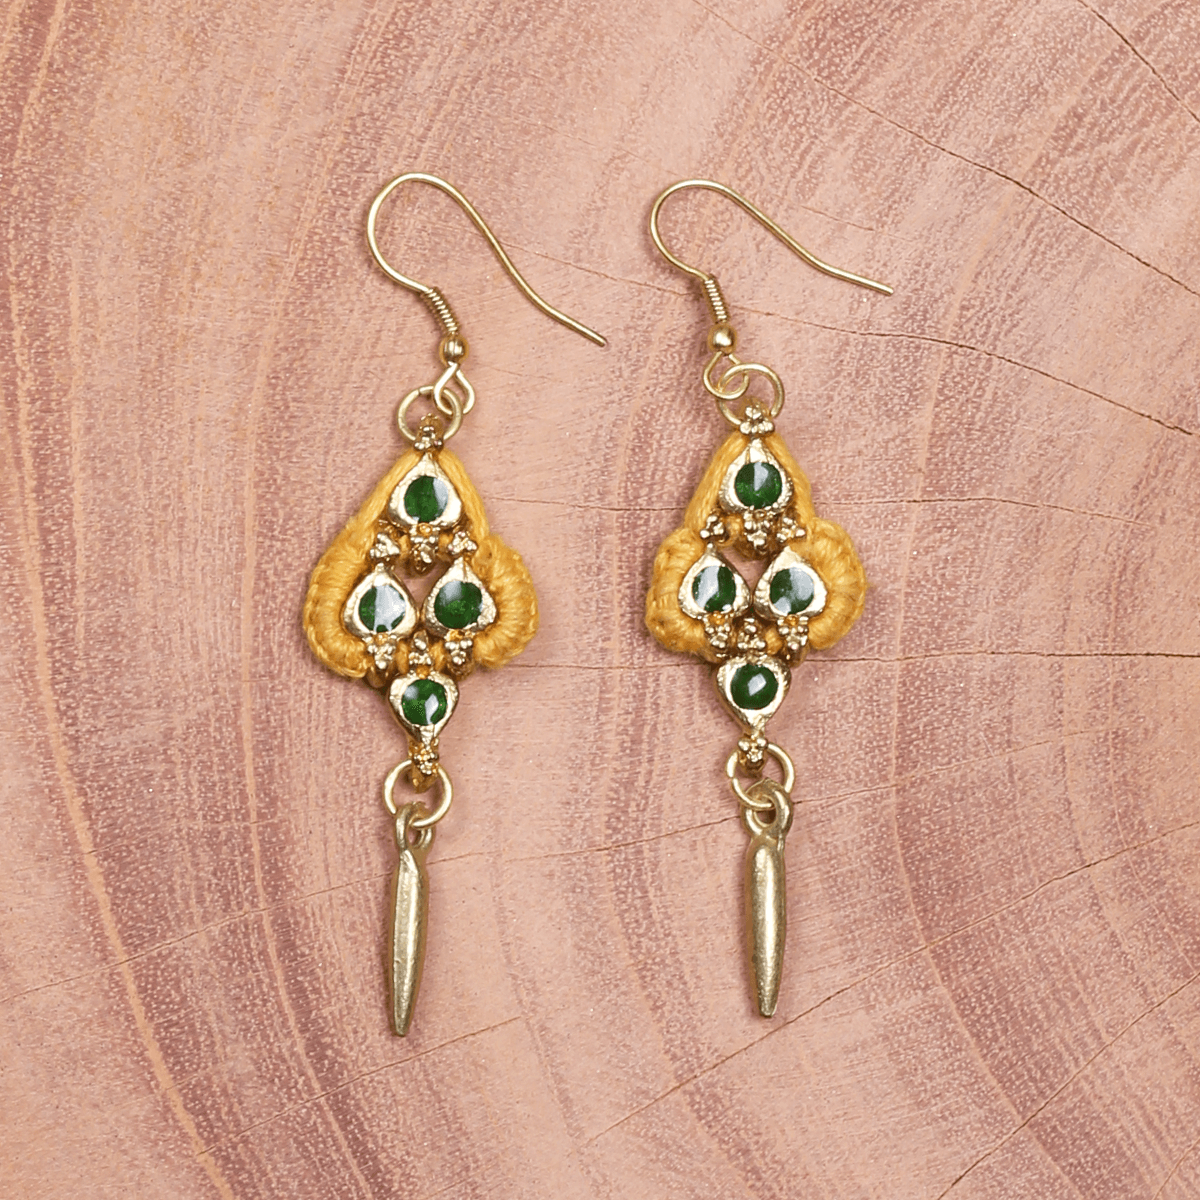 Bohemian Fashion Metal Earrings - Yellow